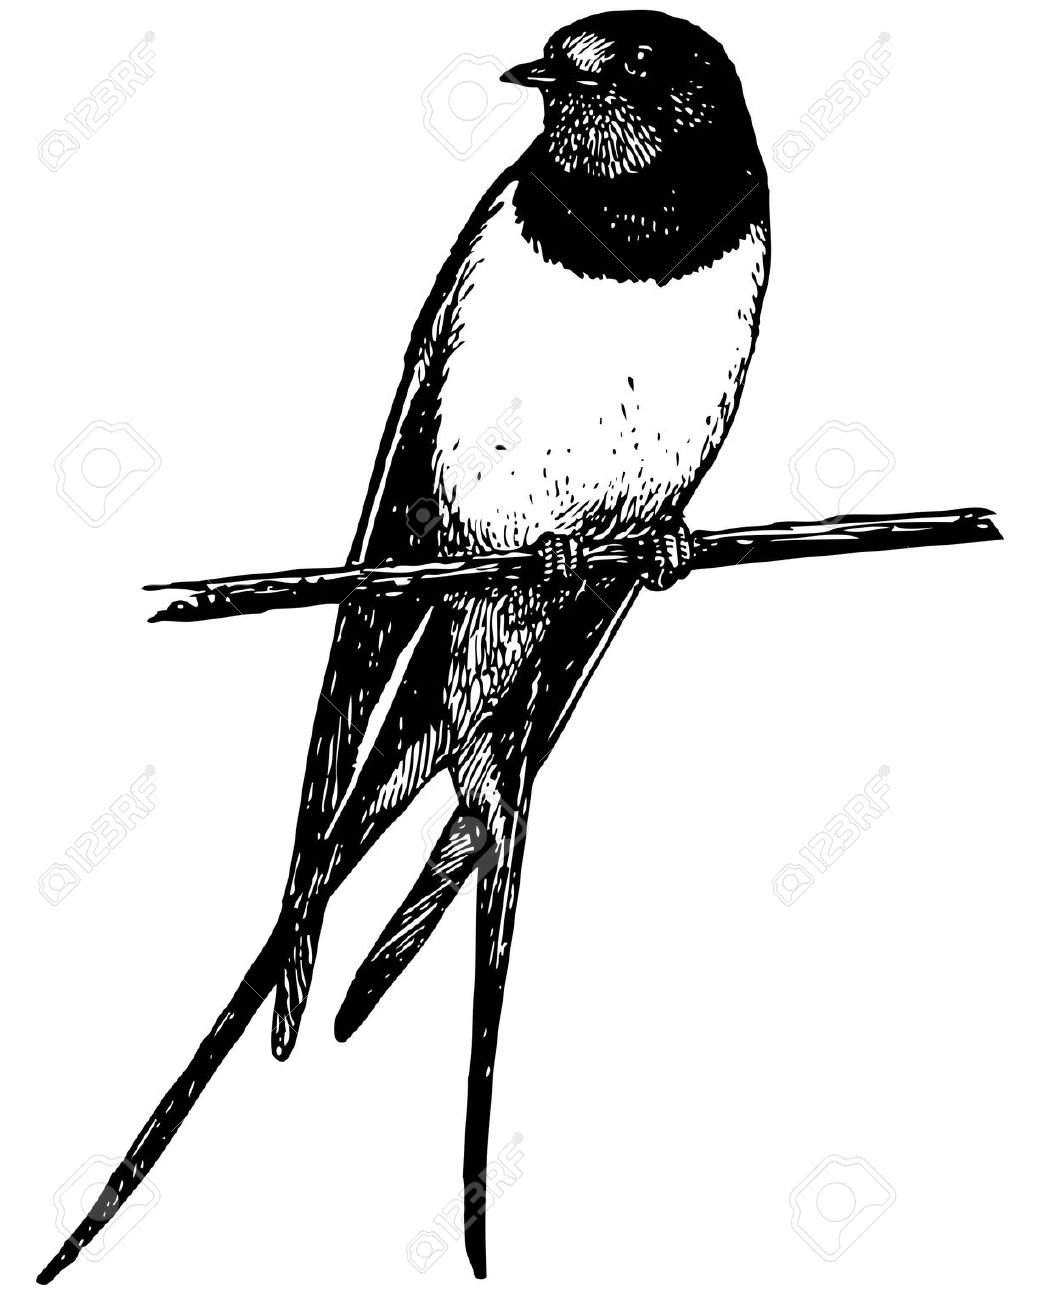 Barn Swallow clipart #16, Download drawings